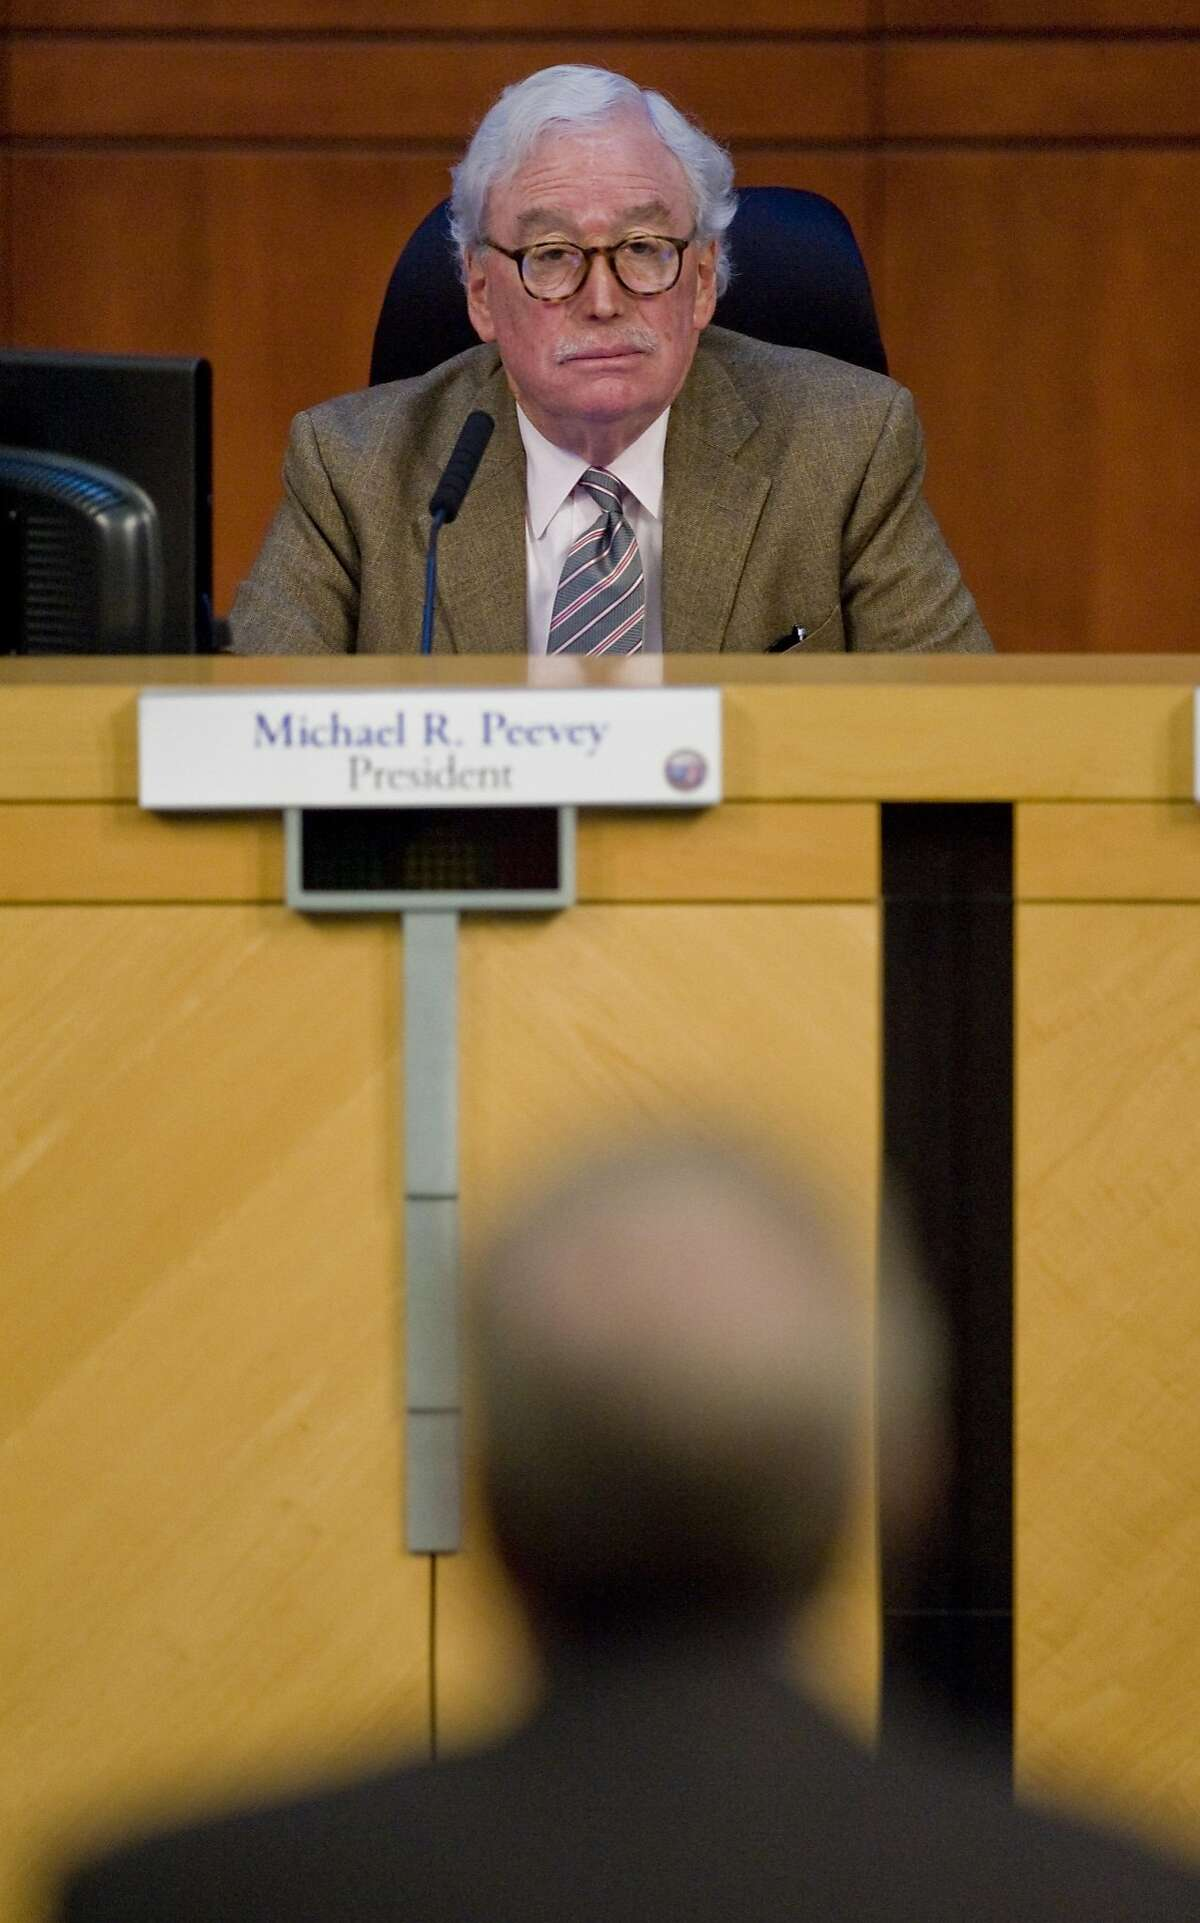 FILE - In this Thursday, Oct. 25, 2012 file photo, Michael Peevey, president of the California Public Utilities Commission, listens to a speaker at Irvine City Hall in Irvine, Calif. Peevey, California's chief utility regulator, under fire over accusations of secret dealings with the state's largest utility, said Thursday, Oct. 9, 2014 that he will not seek reappointment when his term ends at the end of the year. (AP Photo/The Orange County Register, Mark Rightmire, File) MAGS OUT; LOS ANGELES TIMES OUT